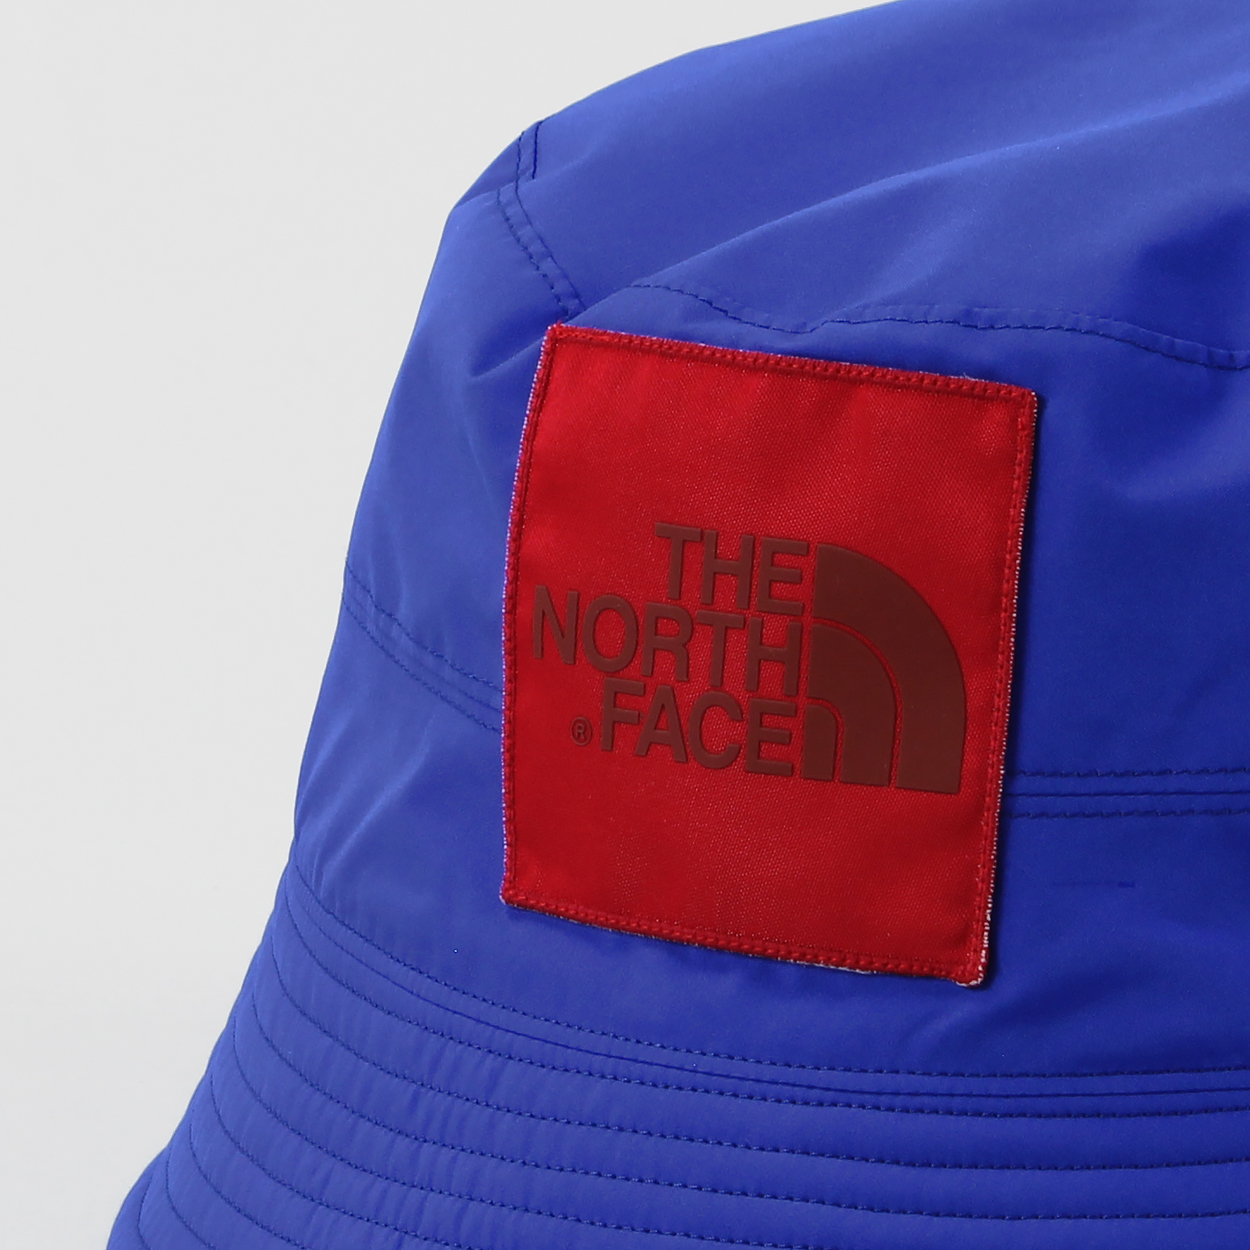 b506c68e Part of The North Face Red Label's SS17 collection, the Base Camp Bucket Hat  uses Gore Windstopper fabric and has a water repellent finish.